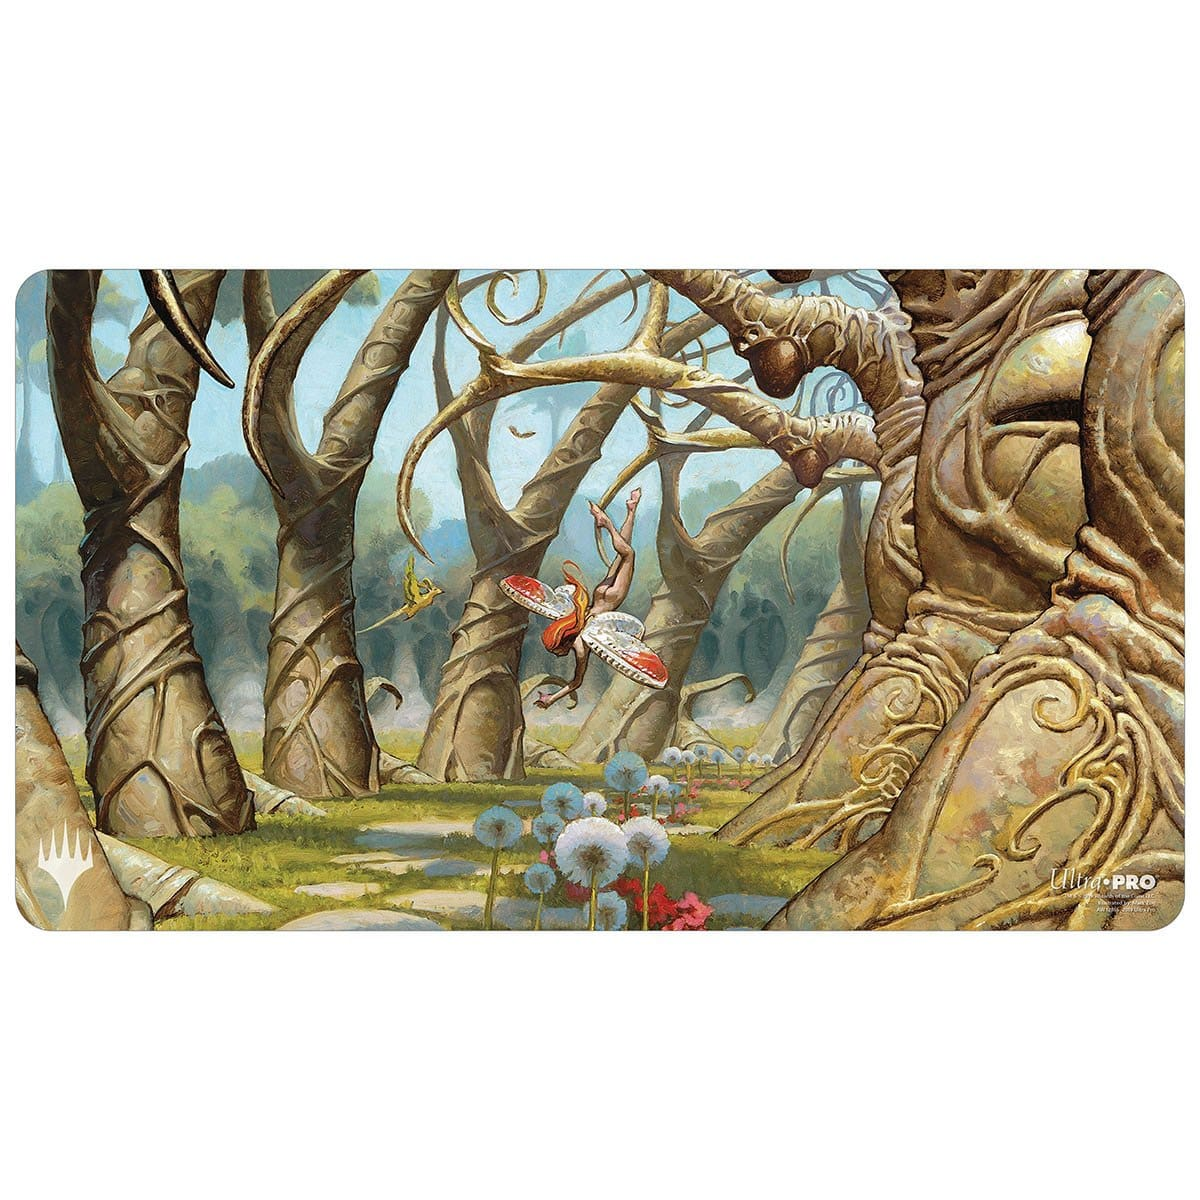 Gaea's Cradle Playmat - Playmat - Original Magic Art - Accessories for Magic the Gathering and other card games